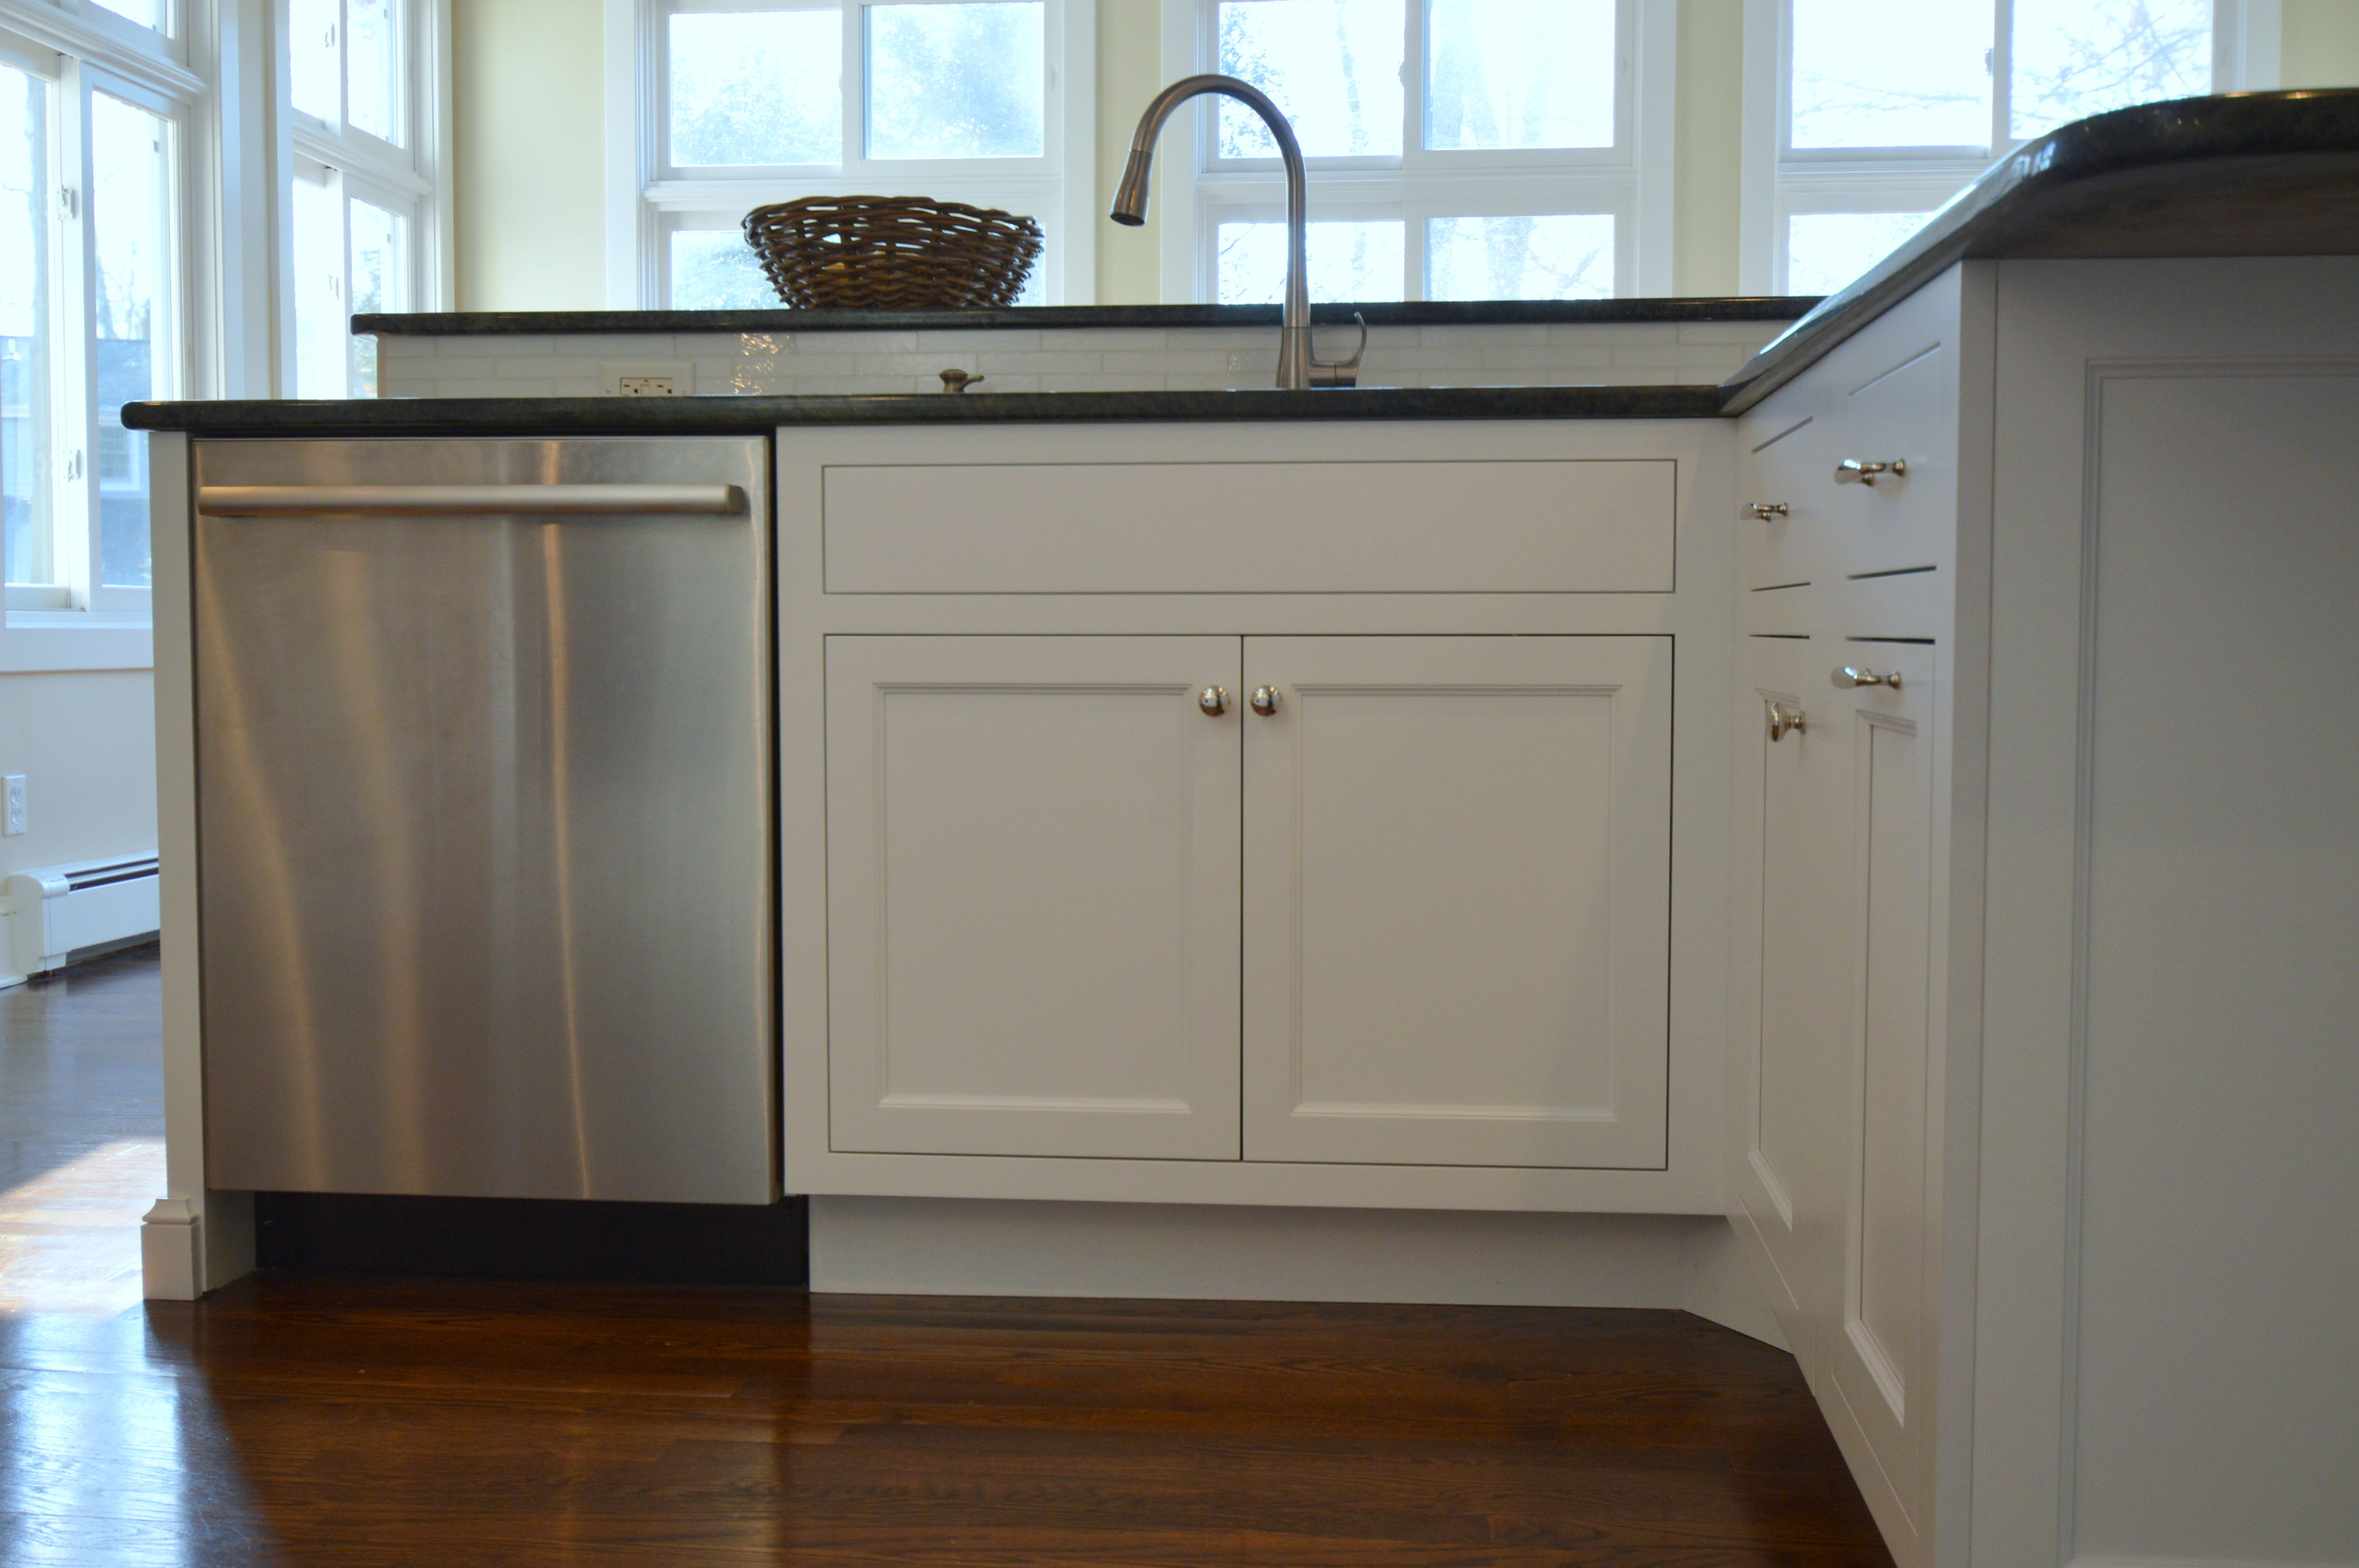 Inset White Cabinet Doors - Sink Base